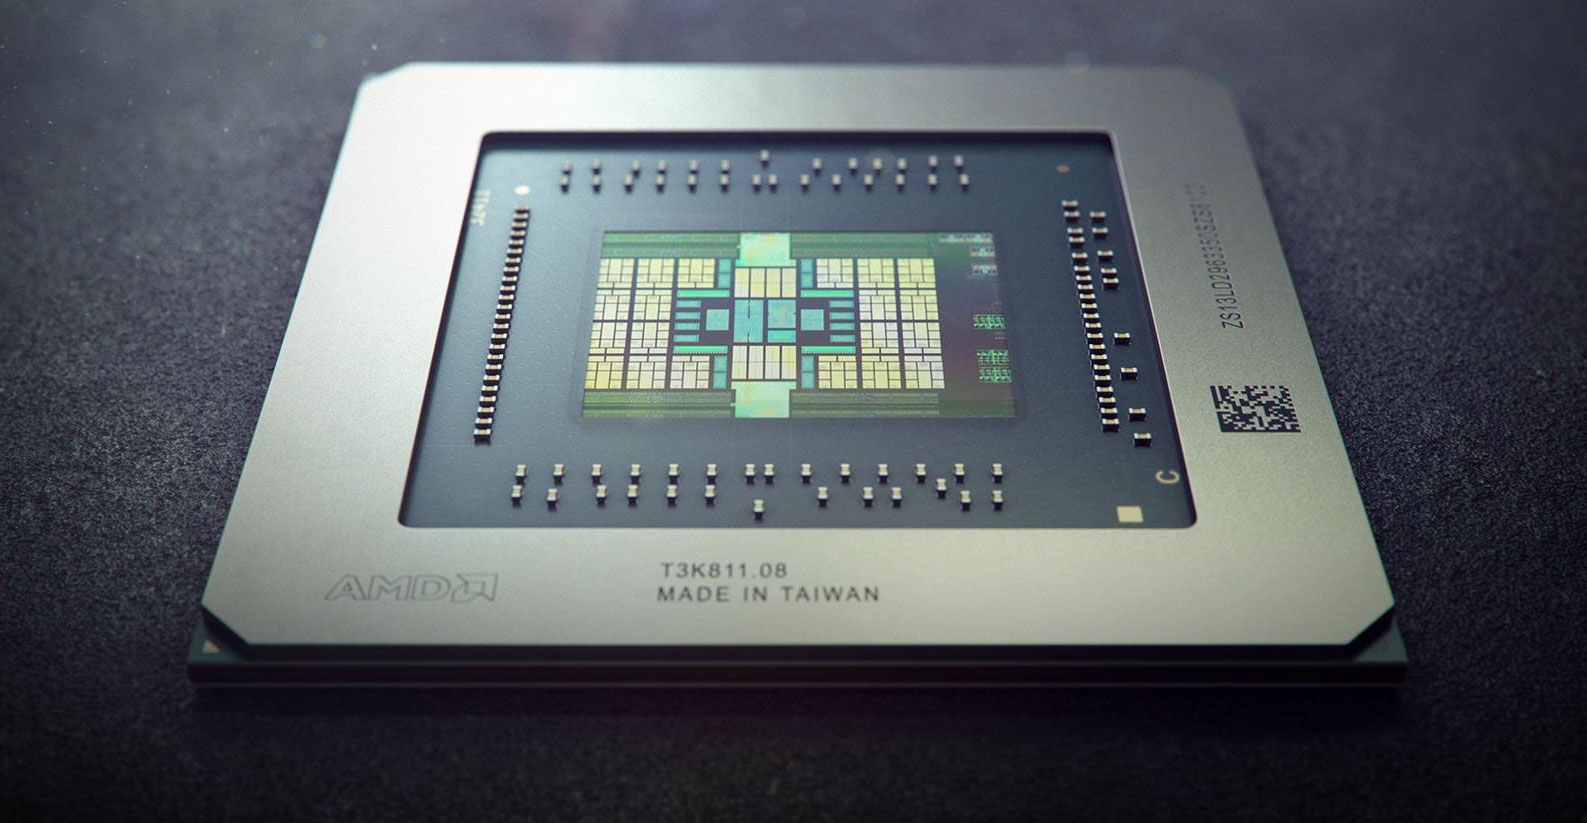 Amd Big Navi Gpu Pricing Rumoured To Be Slashed In Light Of Nvidia S Ampere Reveal Pc Gamer